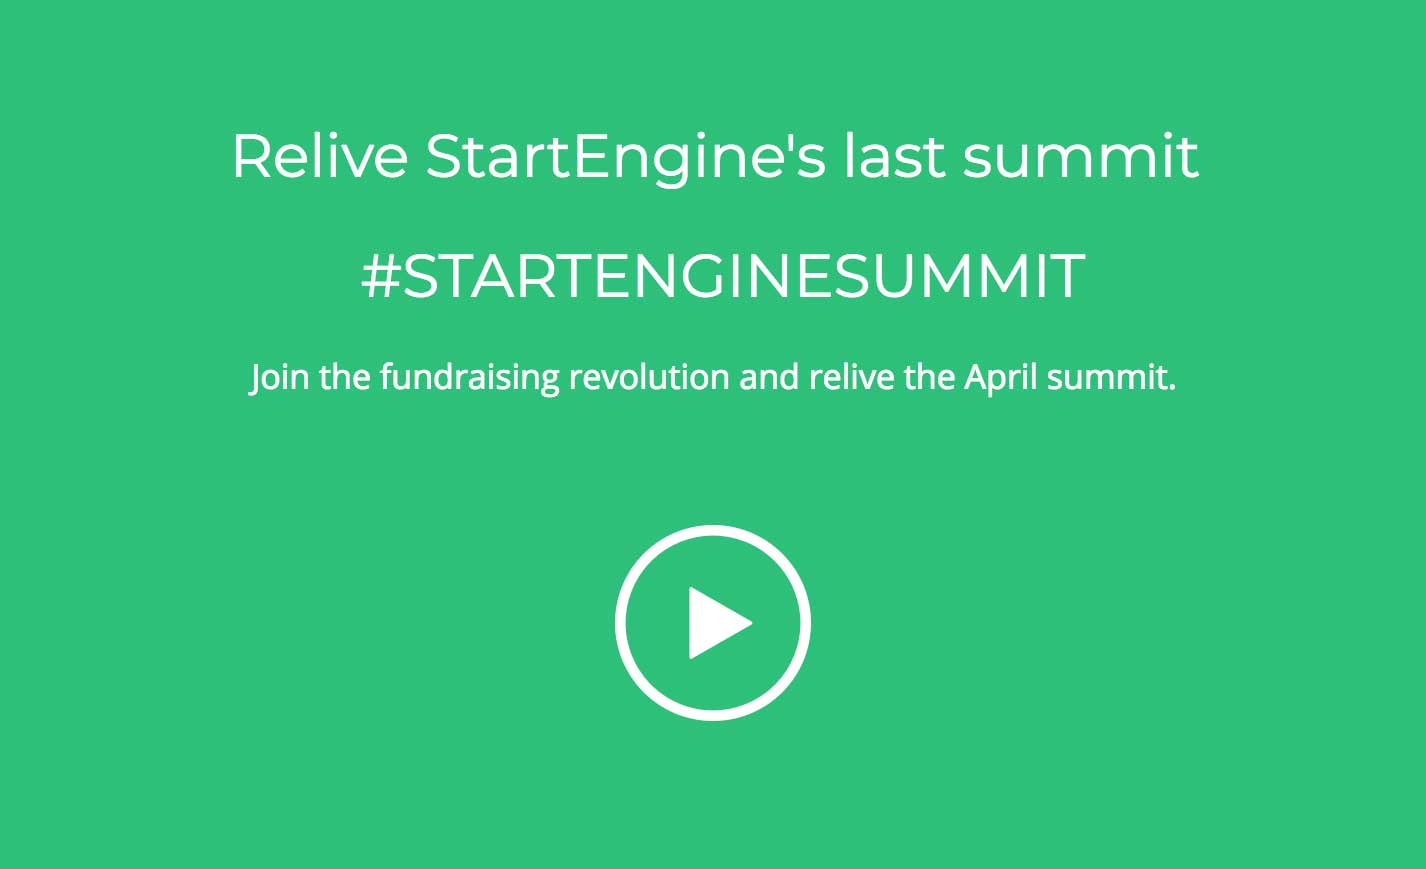 Join the fundraising revolution and relive the April summit.